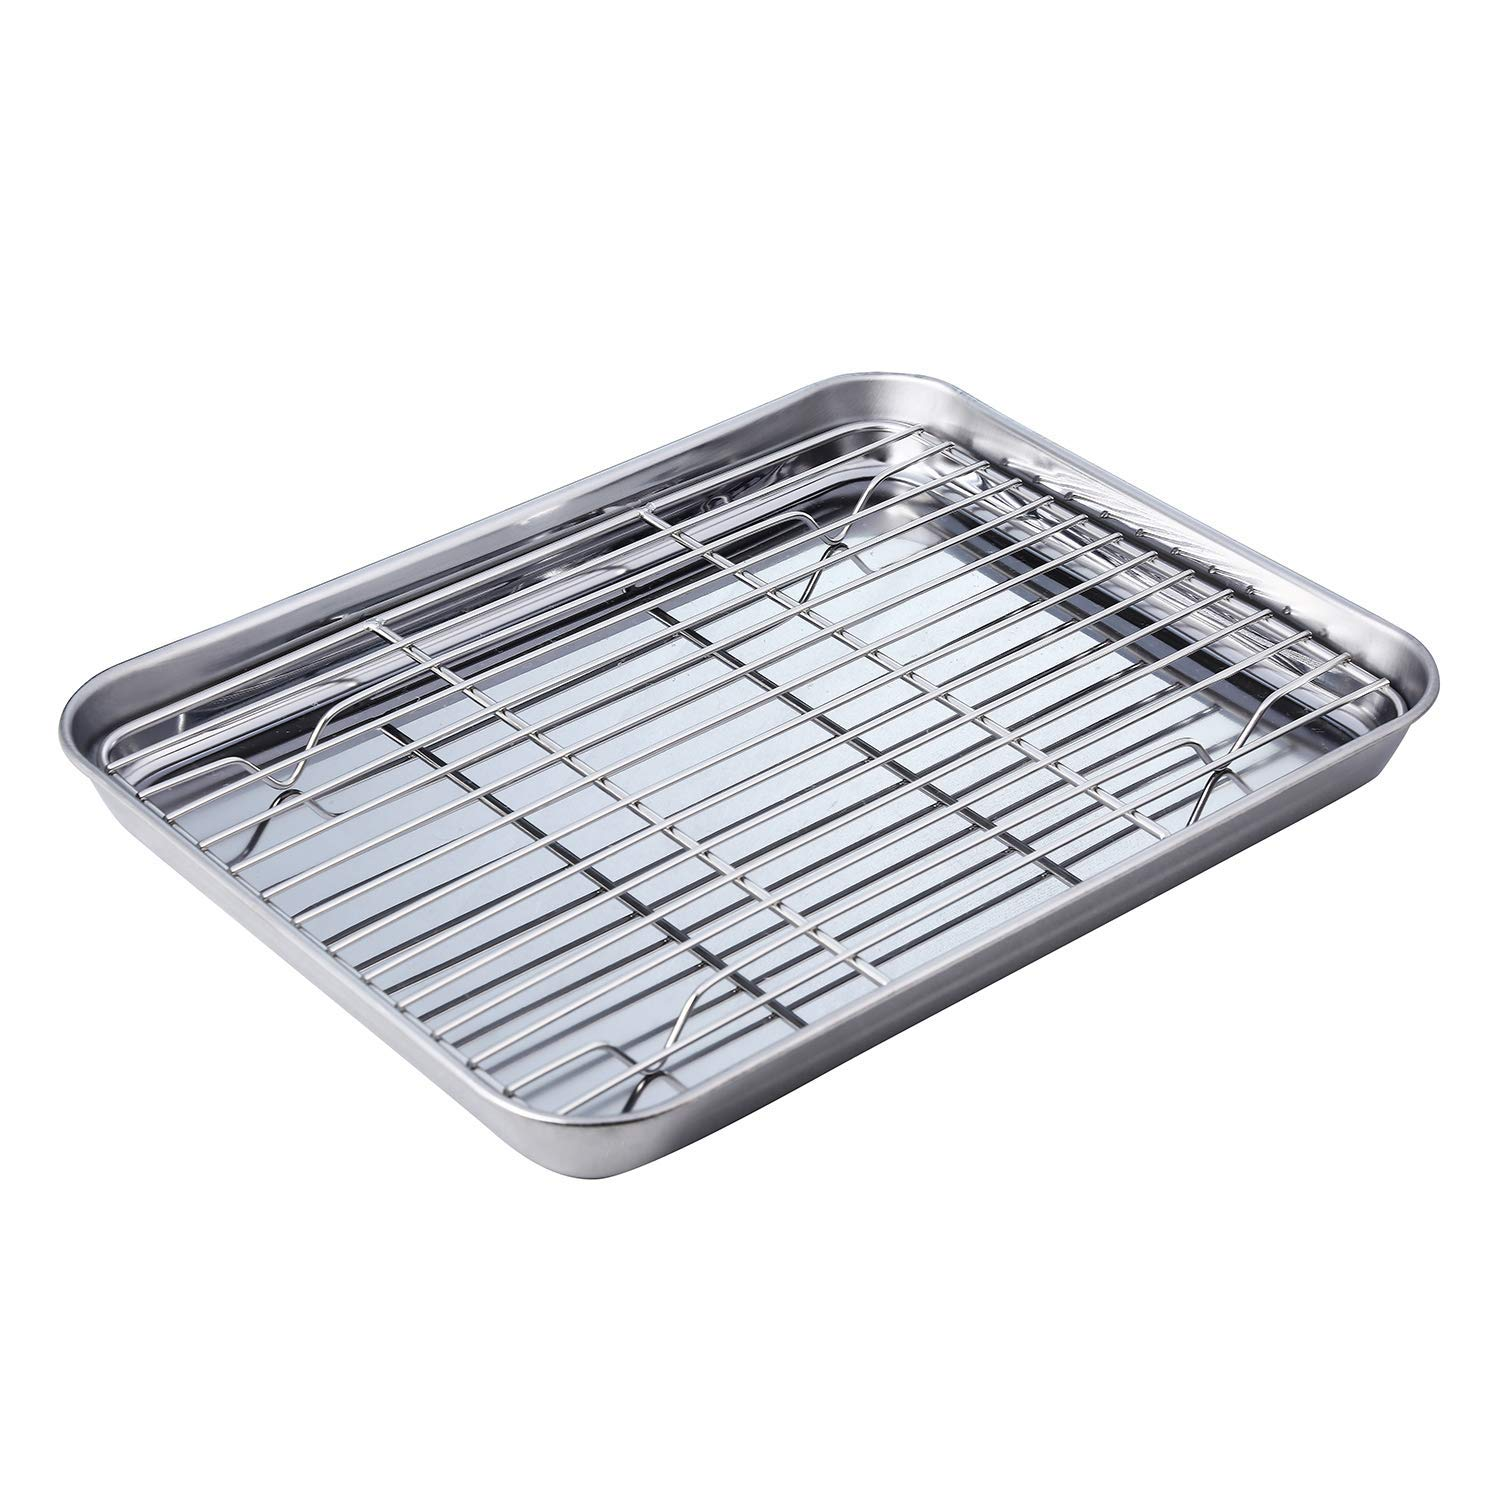 Cheap 9x12 Baking Pan Find 9x12 Baking Pan Deals On Line